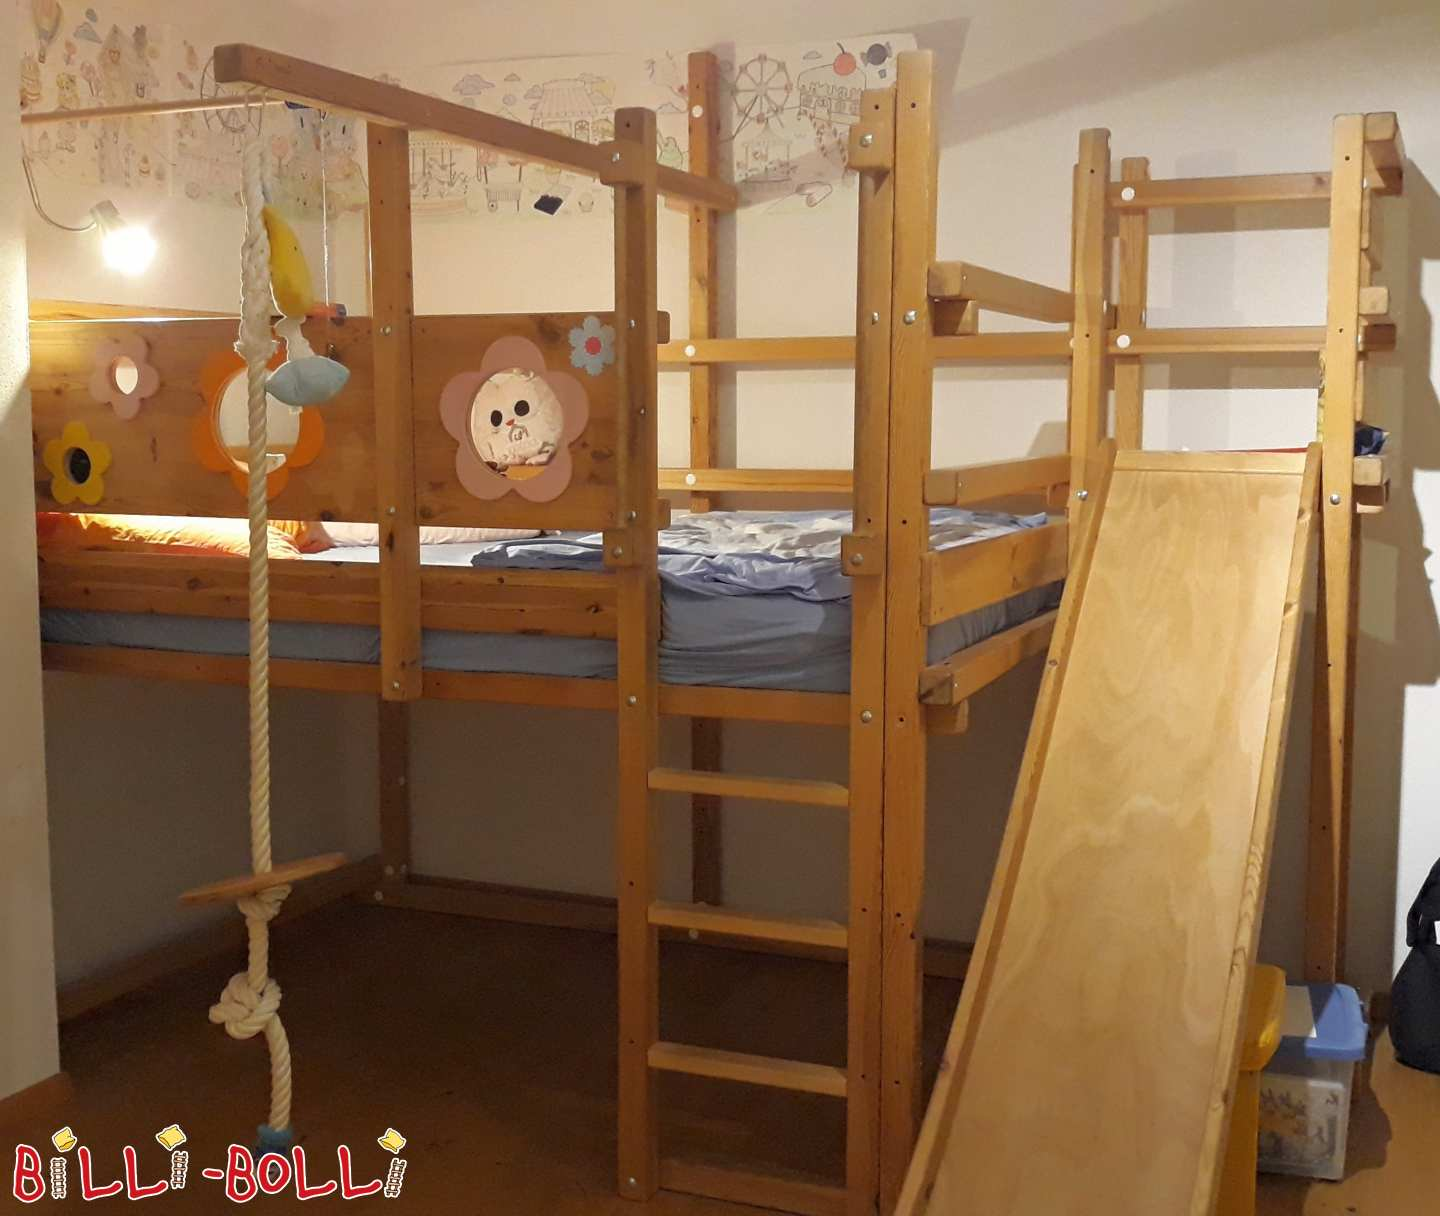 Growing bunk bed in 140 x 200 cm made of pine incl. slide tower (second hand loft bed)